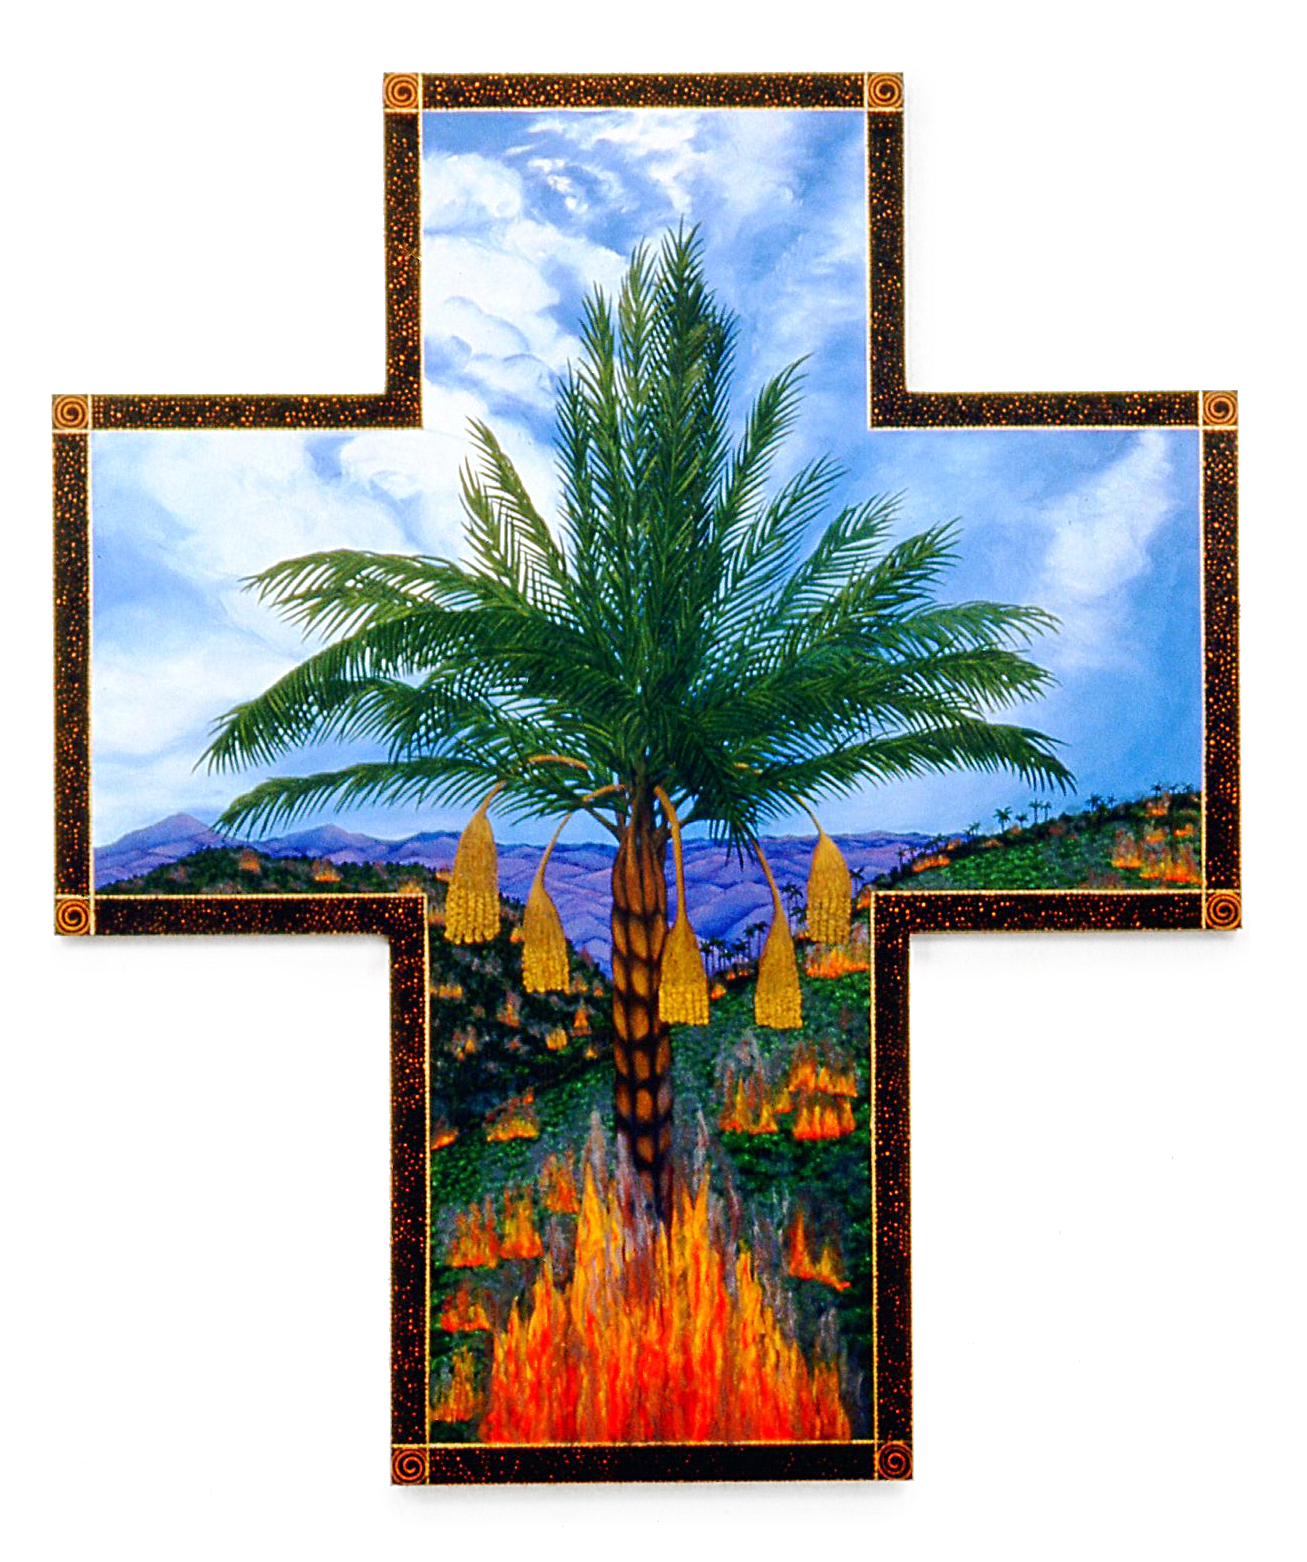 Burning the Rainforest, oil on shaped canvas, 93x78 (1995)